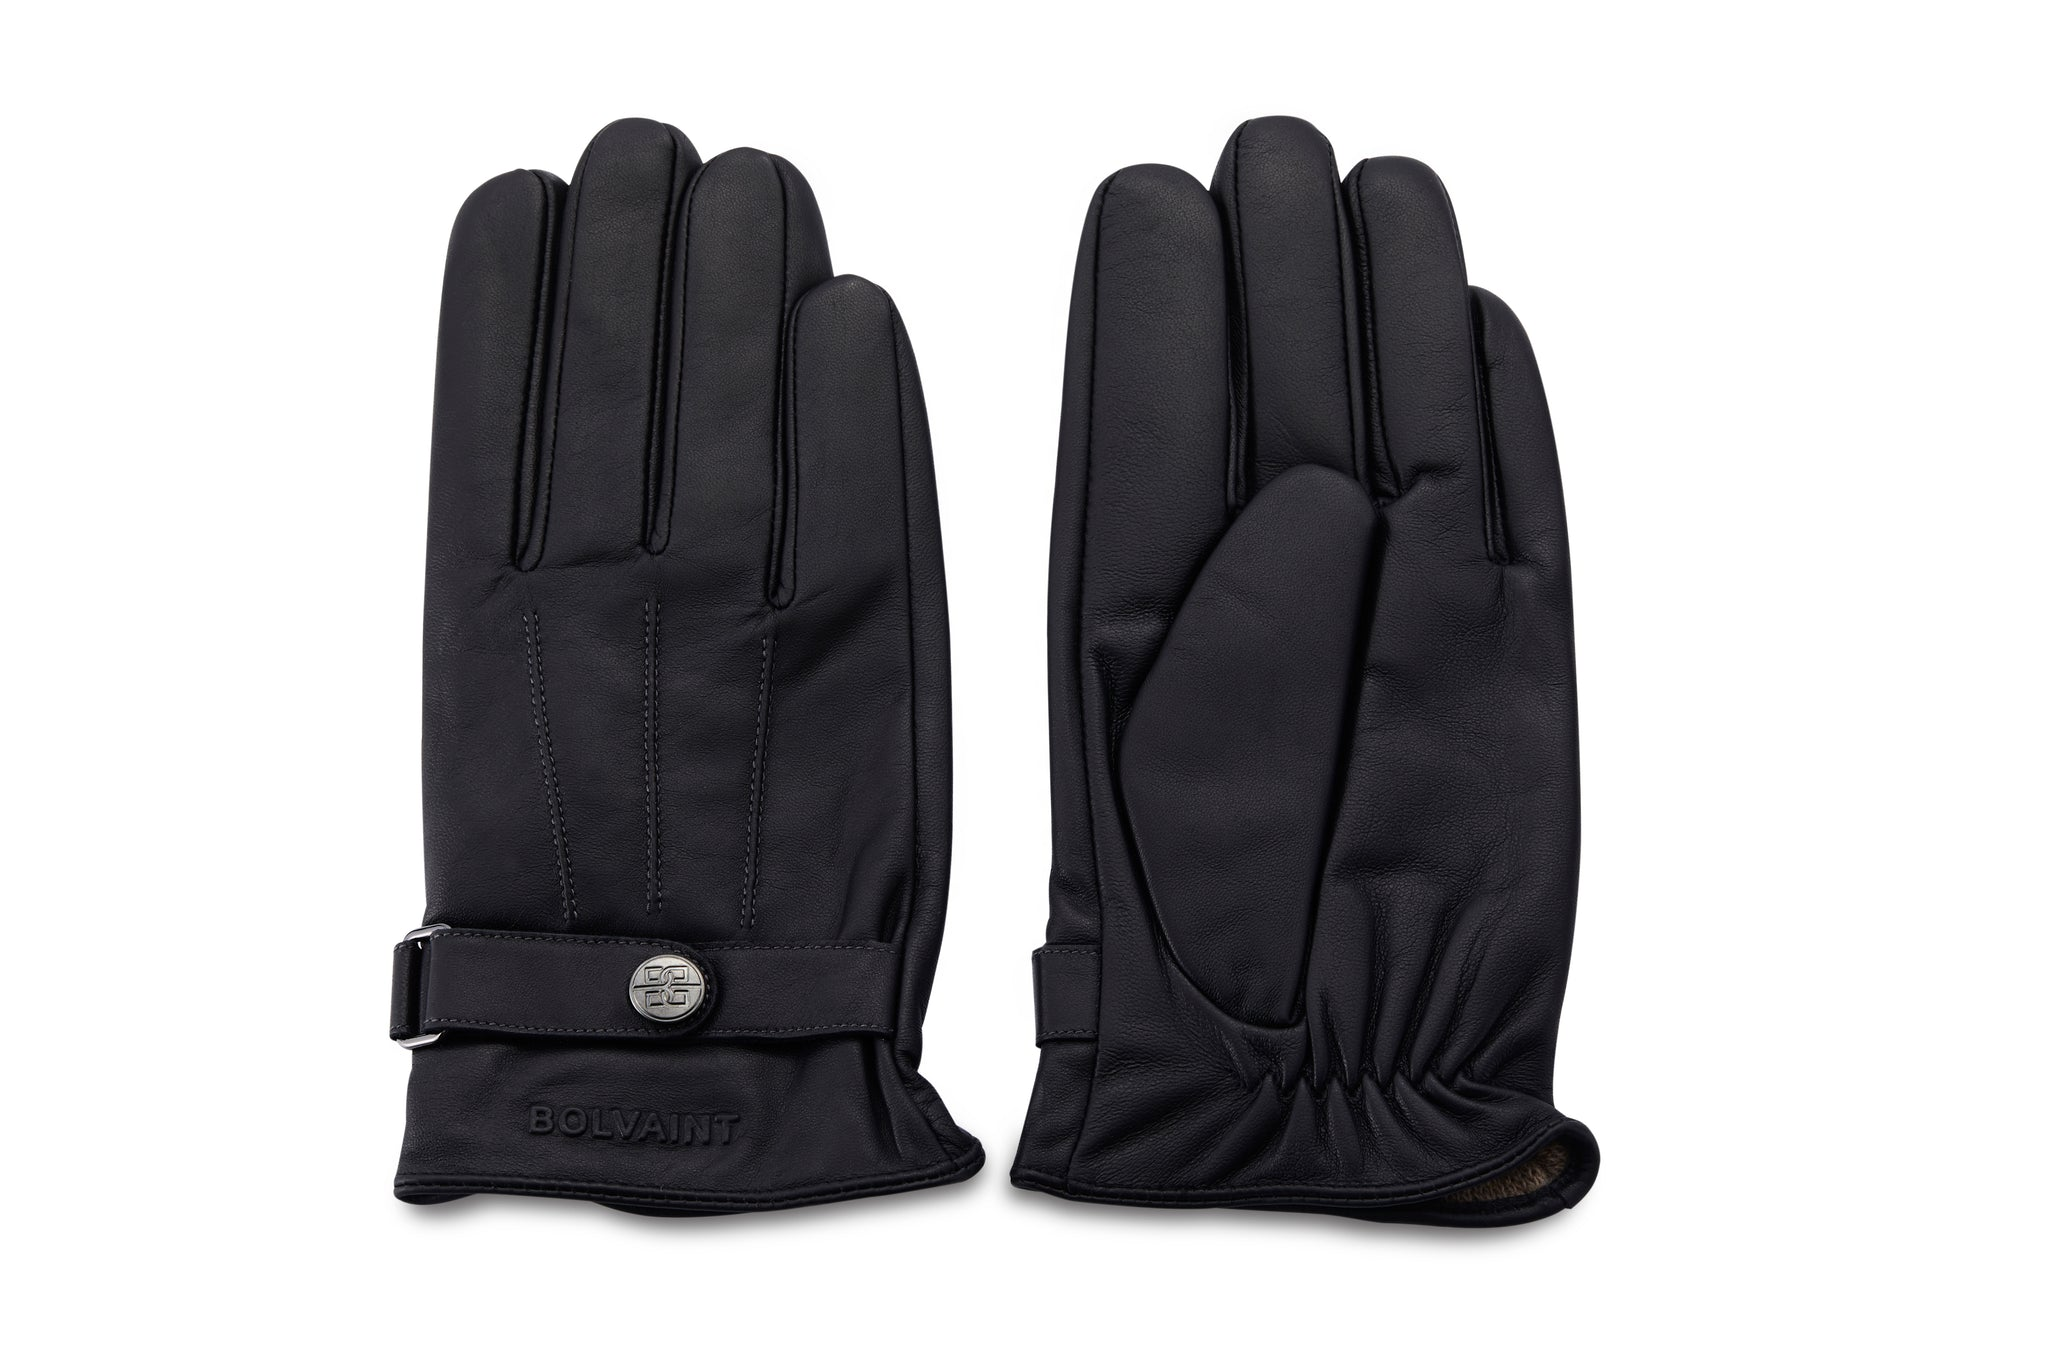 Bolvaint Acel Lambskin Gloves - Men's -100% Lambskin Outer and 100% Cashmere Lining